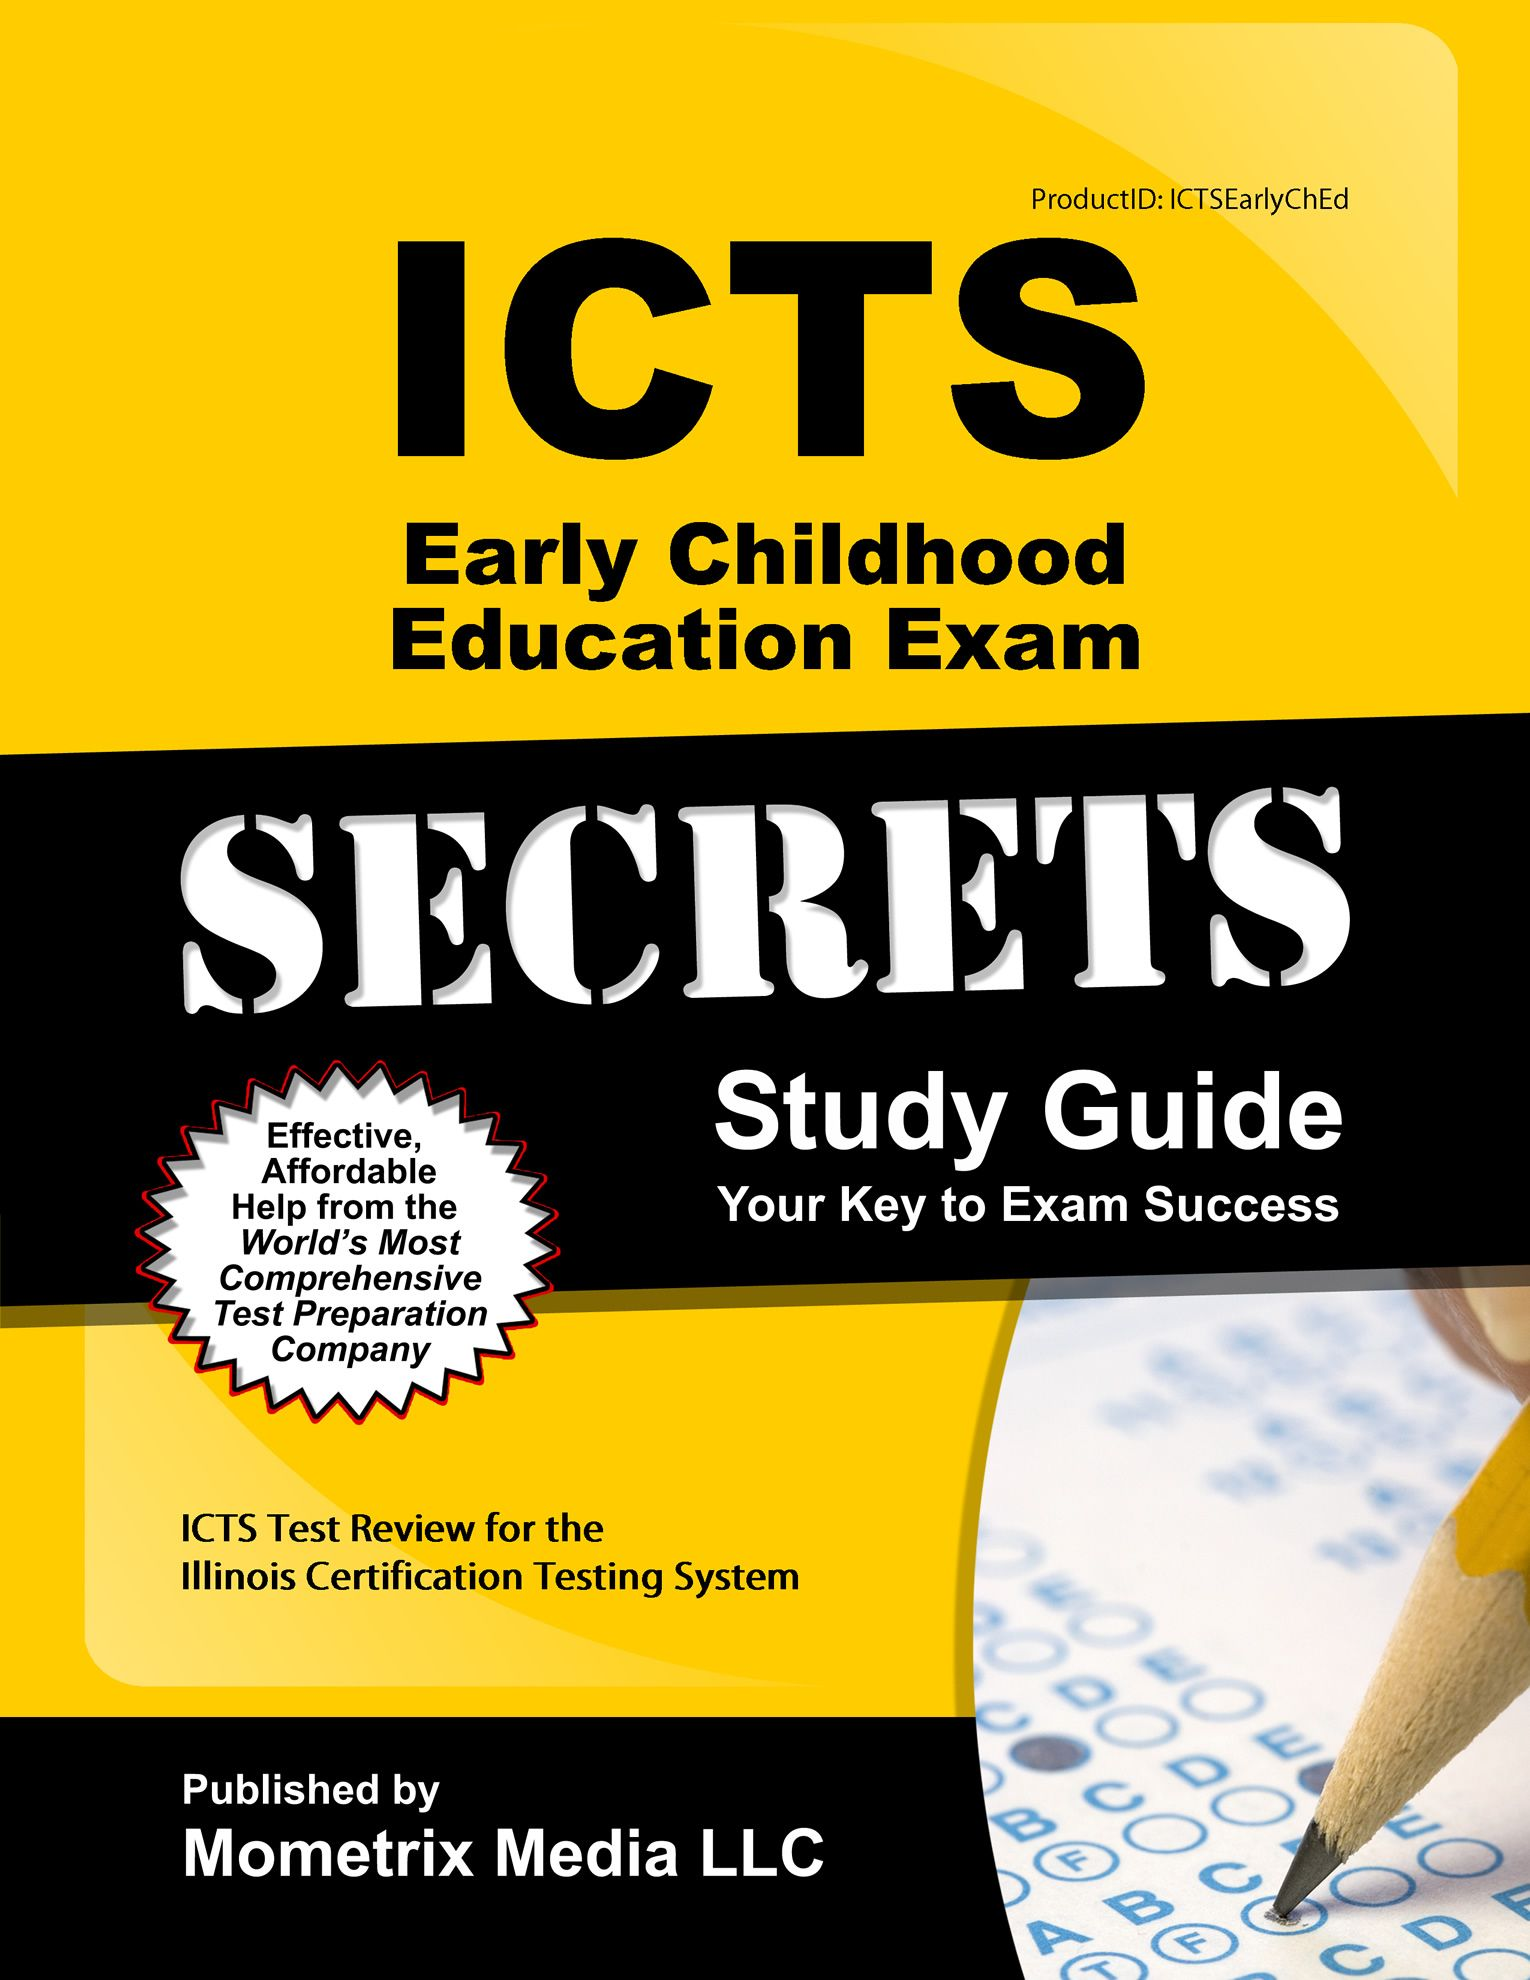 ICTS Early Childhood Educational Exam Study Guide http